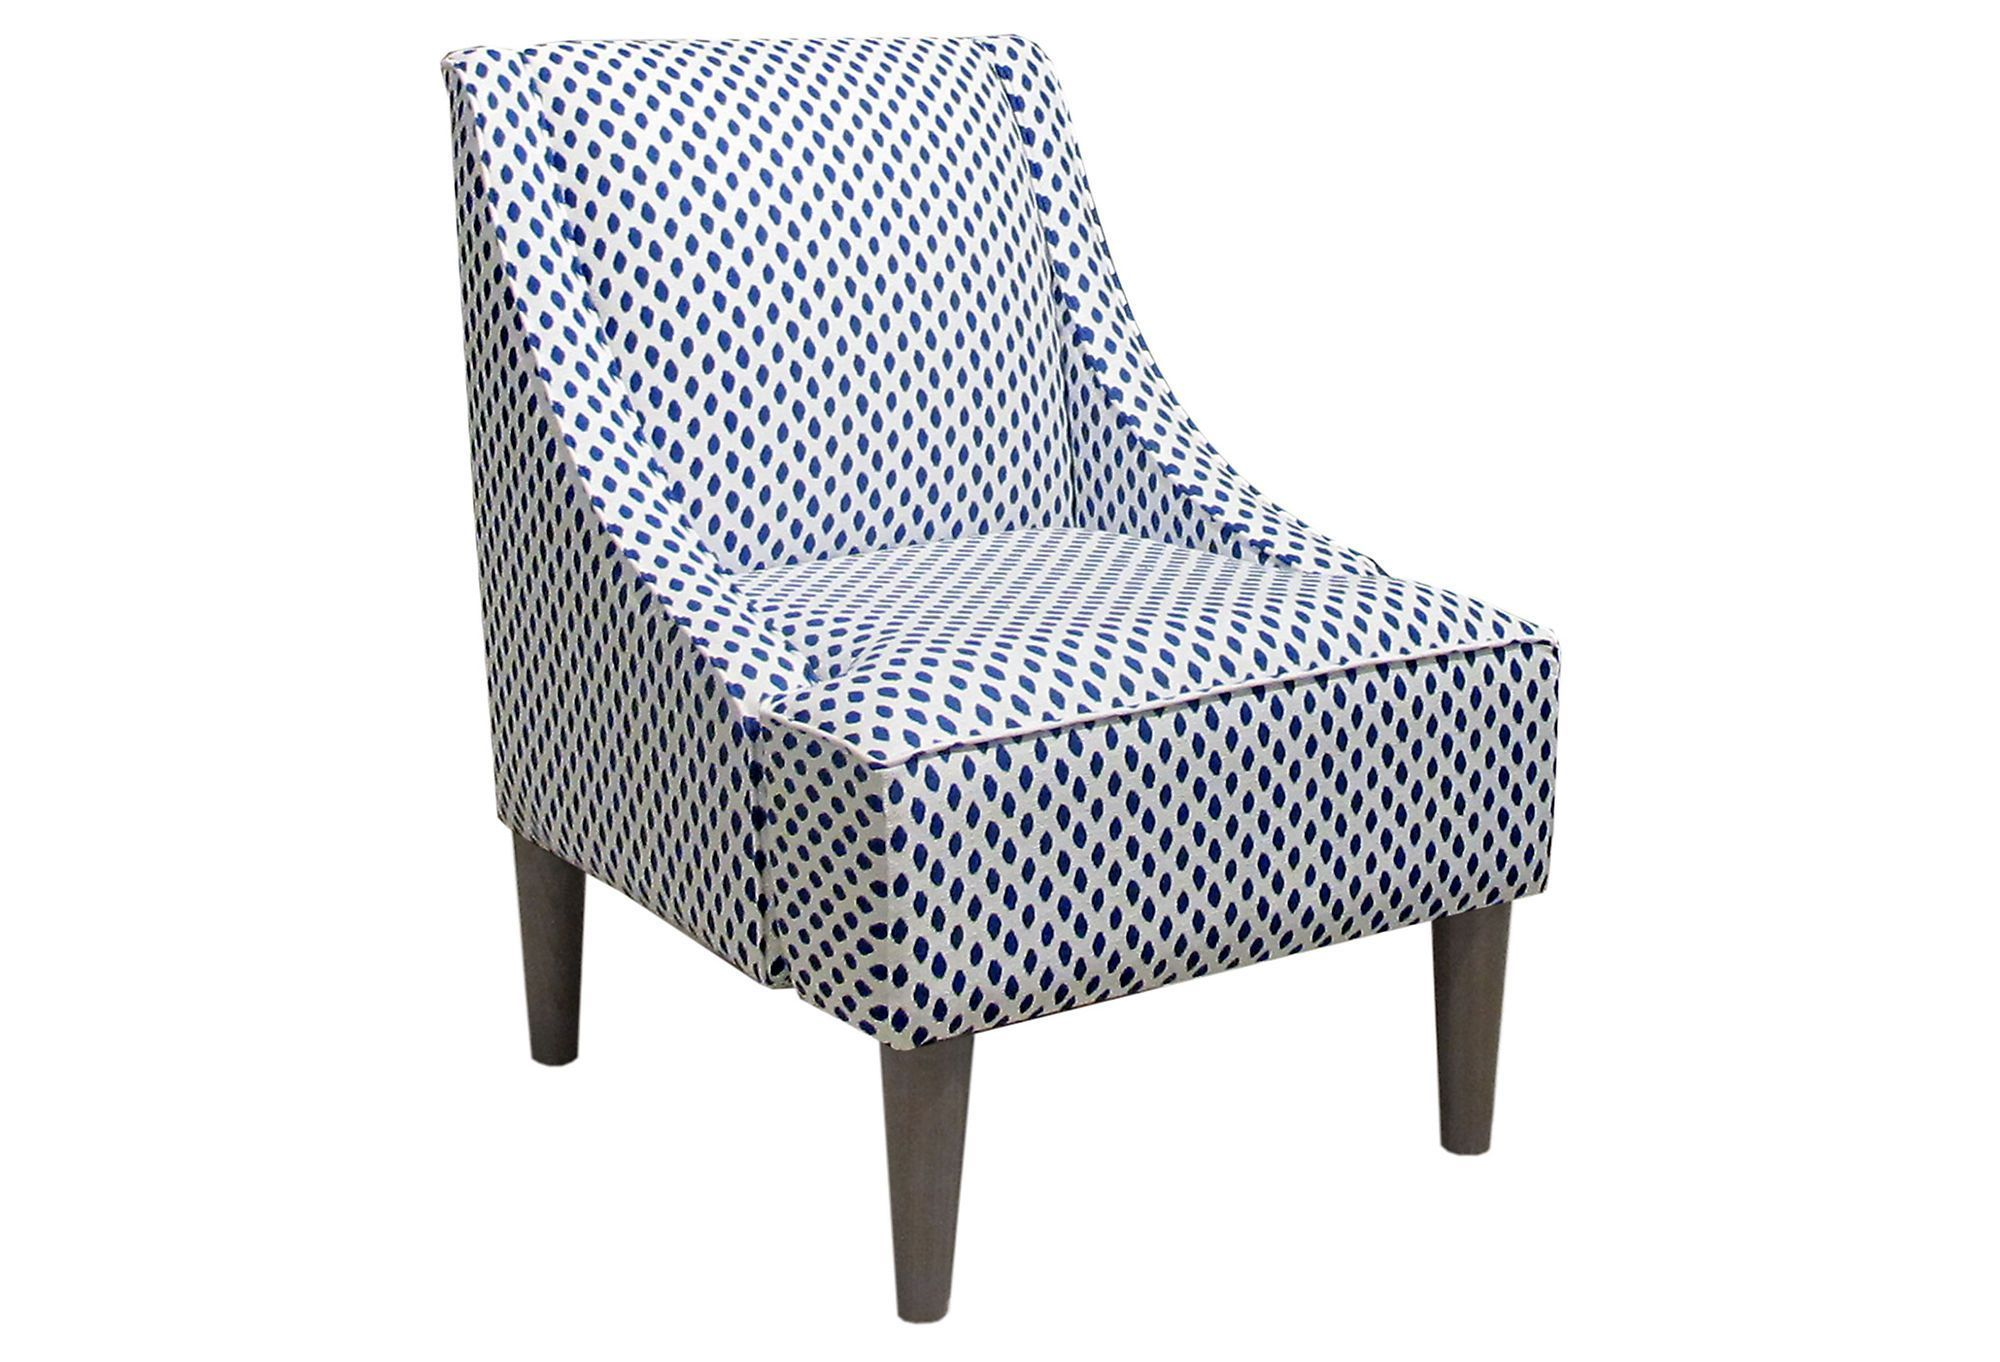 bedroom chair navy and a half leather recliner quinn swoop arm cotton dots